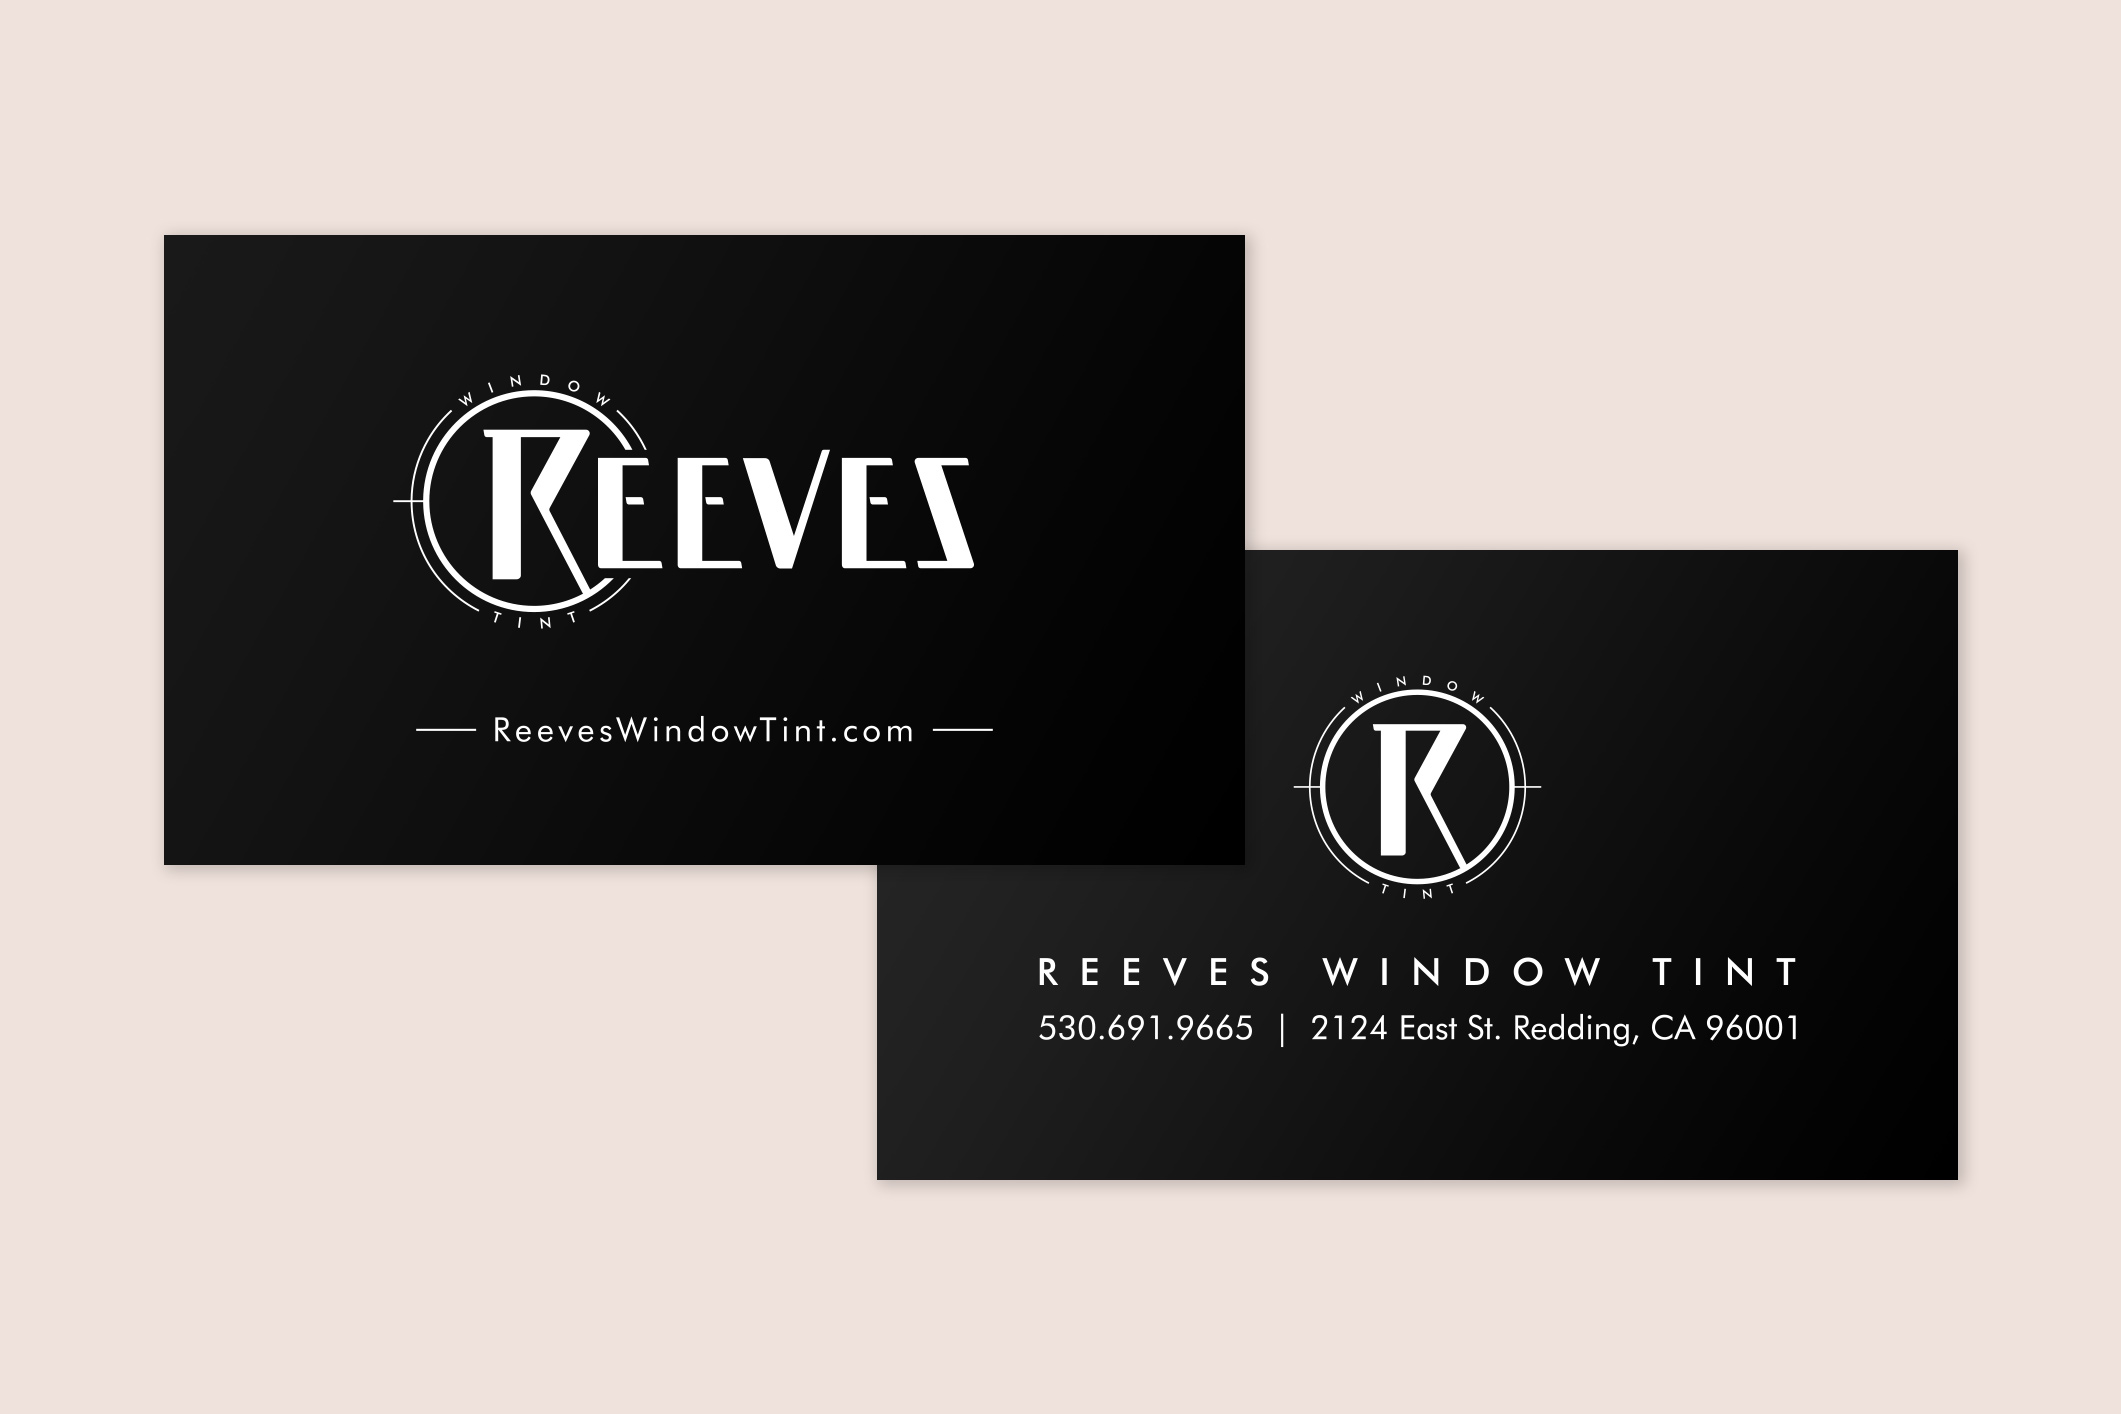 specialty-printing-business-cards.jpg